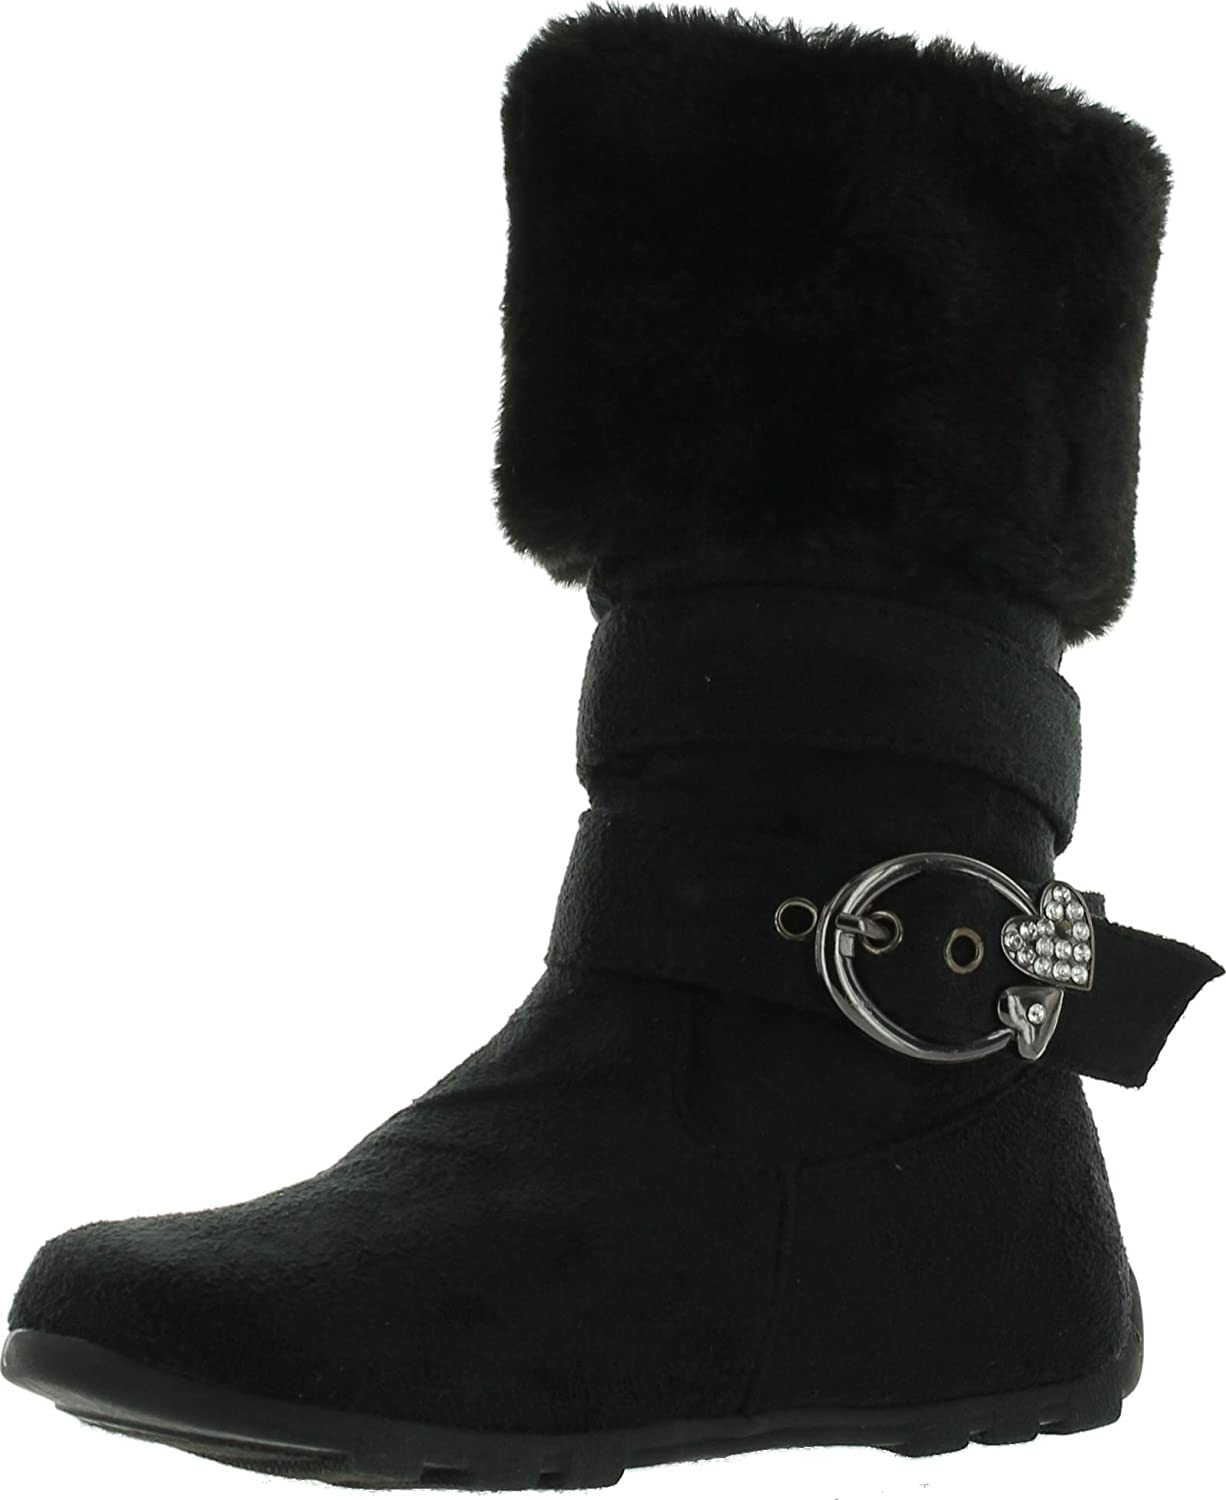 Amazon.com | Rosegirl Girls Slouch Comf Tall Midcalf Suede Winter Boots Shoes | Boots